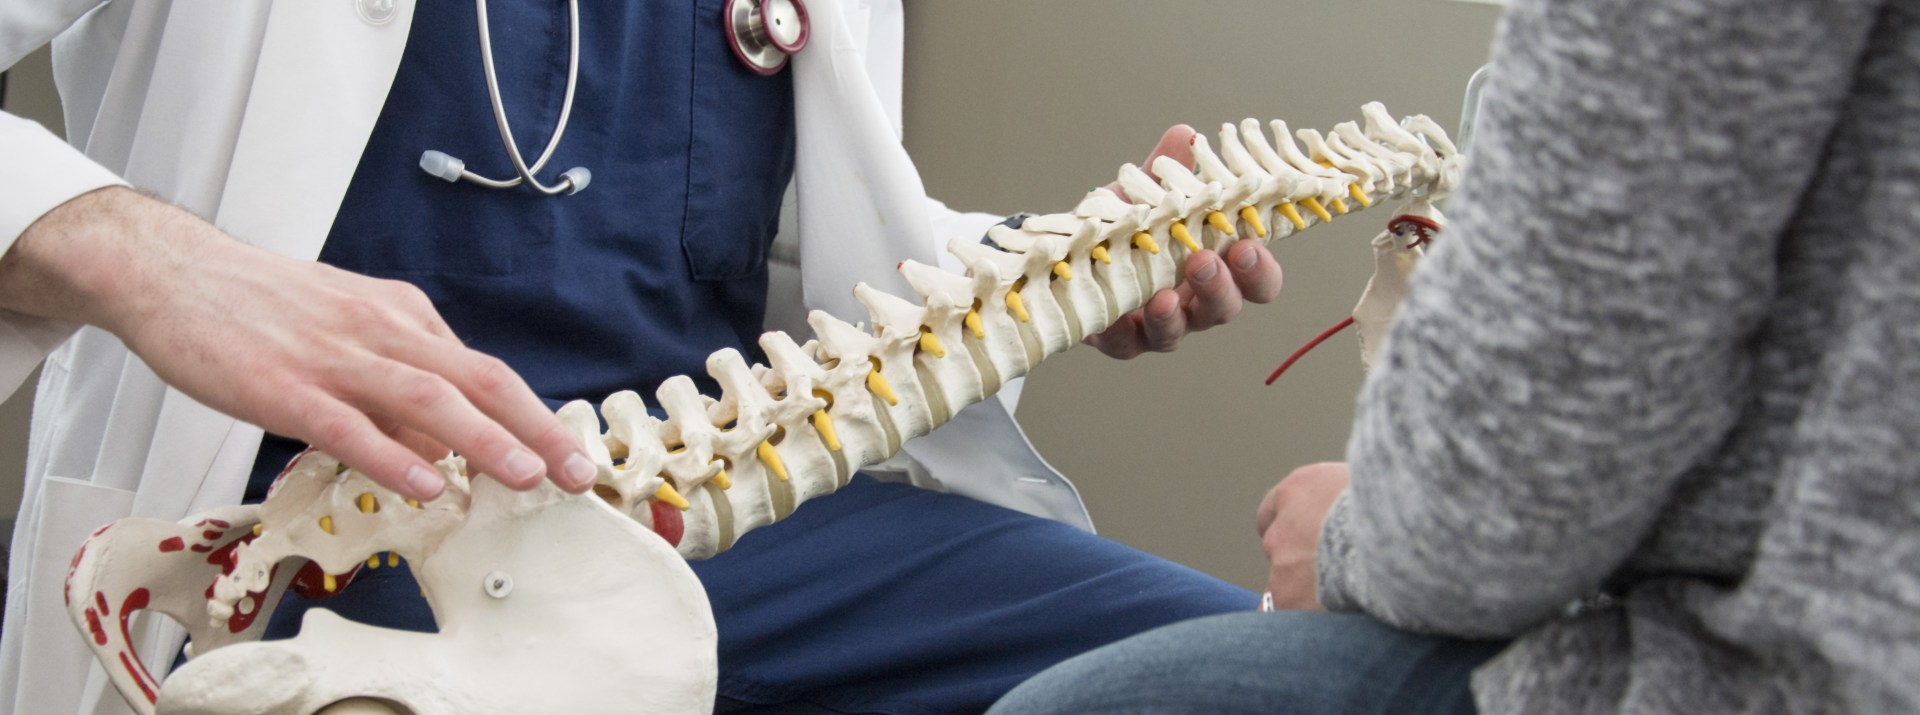 We are a unique chiropractic clinic